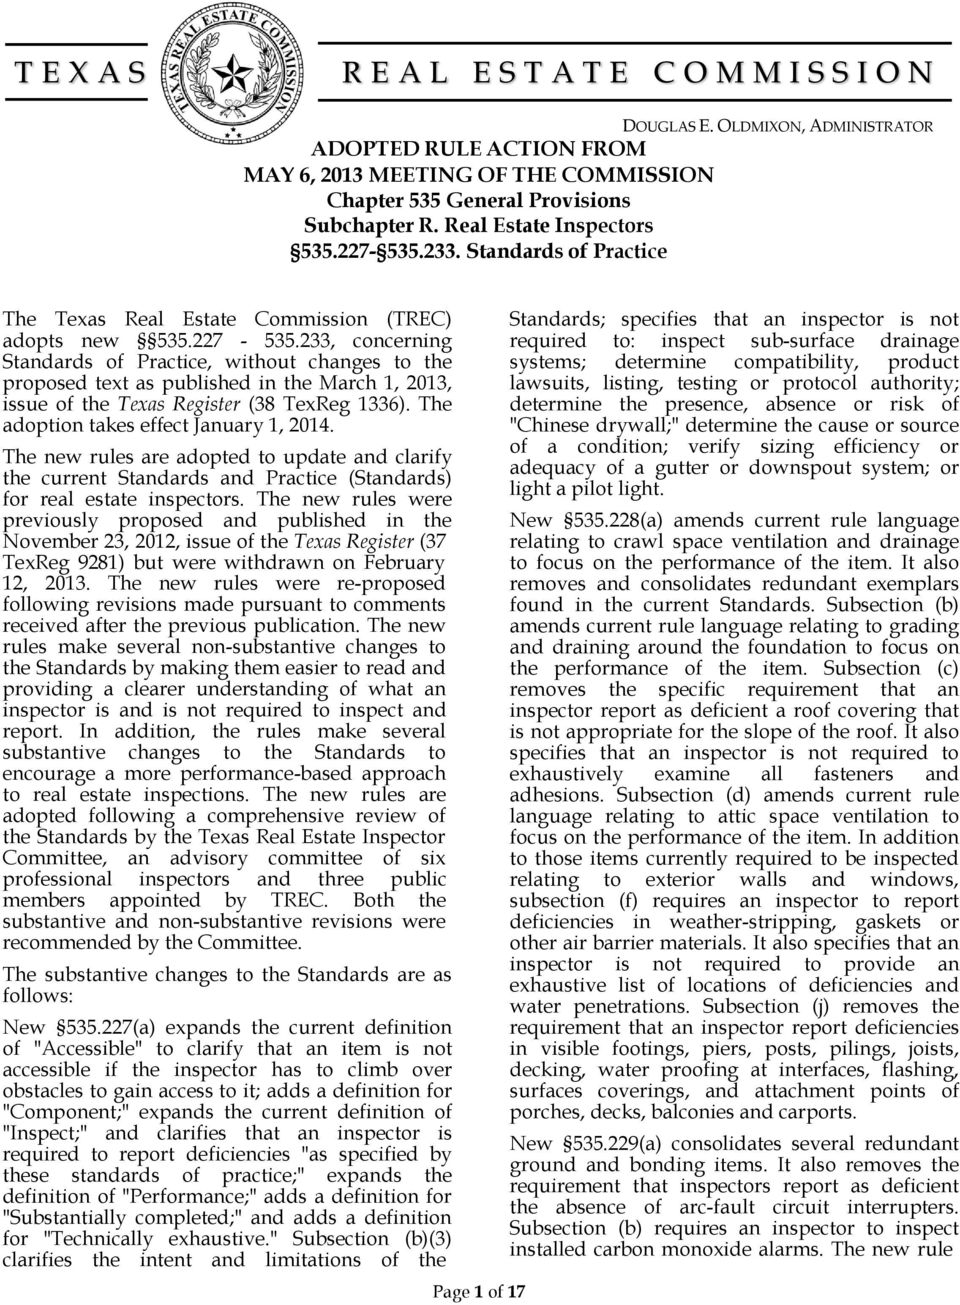 233, concerning Standards of Practice, without changes to the proposed text as published in the March 1, 2013, issue of the Texas Register (38 TexReg 1336). The adoption takes effect January 1, 2014.